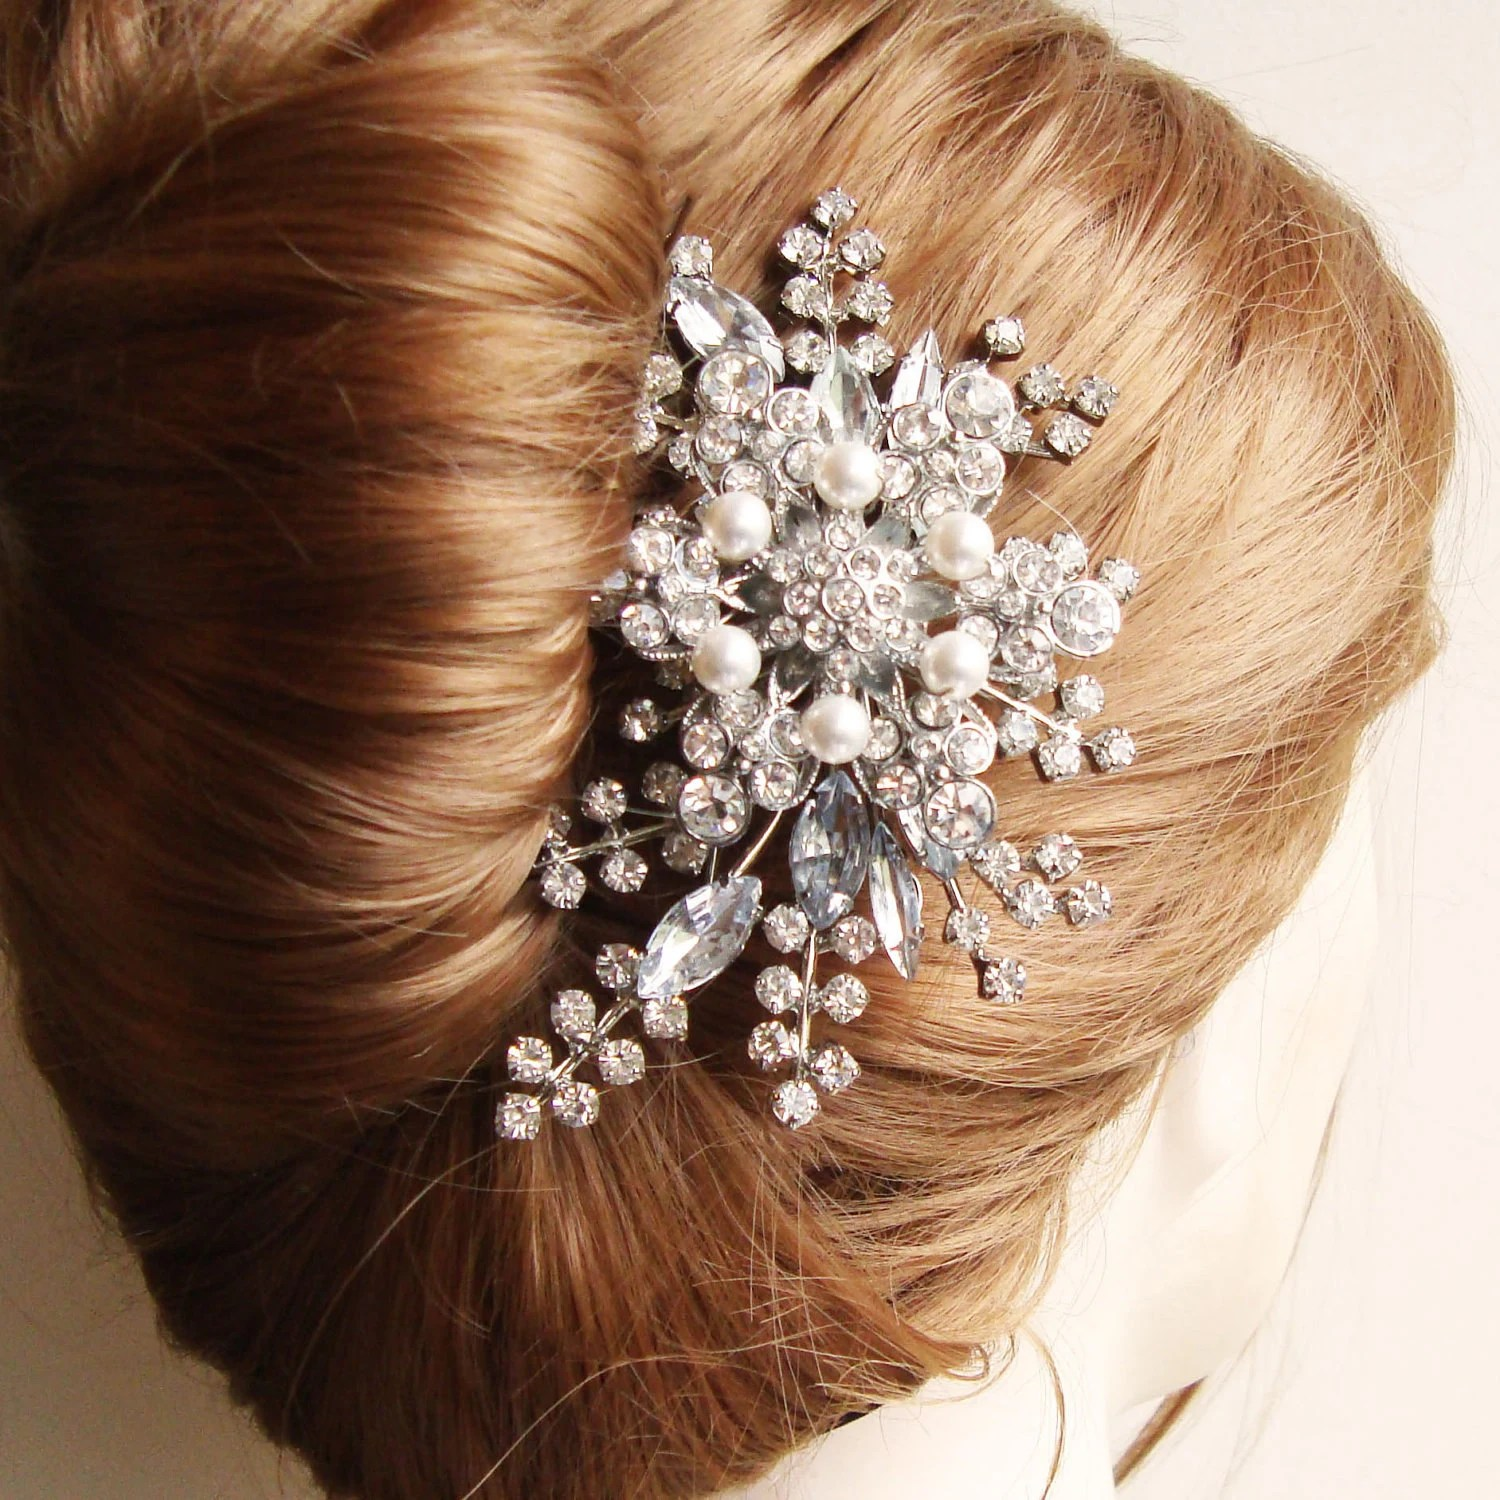 Rhinestone Hair Comb Bridal Hair Comb French Twist Comb